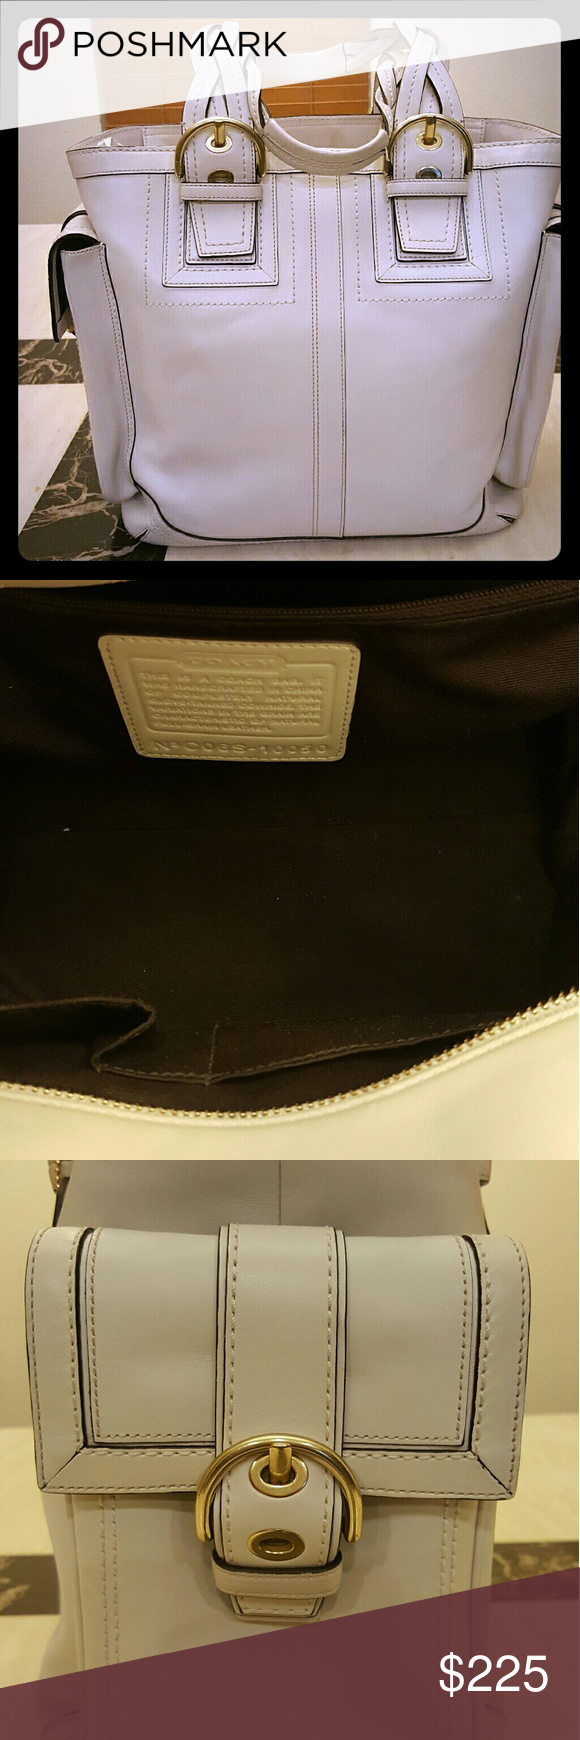 Coach Soho Mia large leather tote bag.  Ivory/crea Excellent pre-owned condition.  Like new.  Stored in dustbag Coach Bags Totes